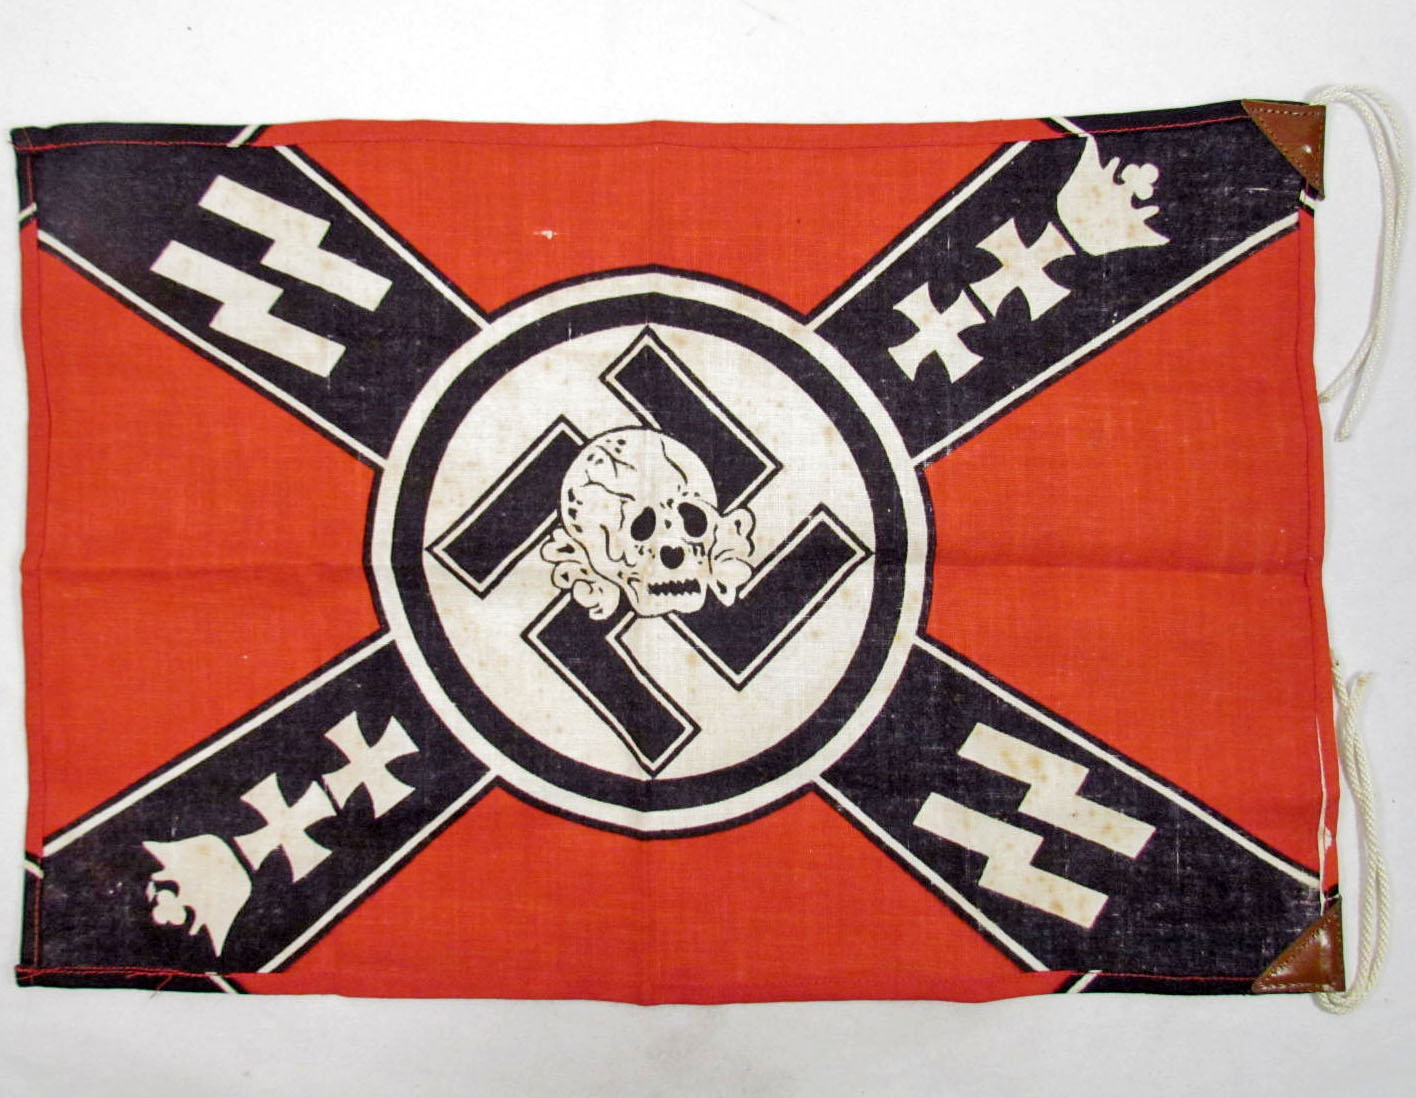 German nazi waffen ss banner skull flag image 2 german nazi waffen ss banner skull flag biocorpaavc Image collections